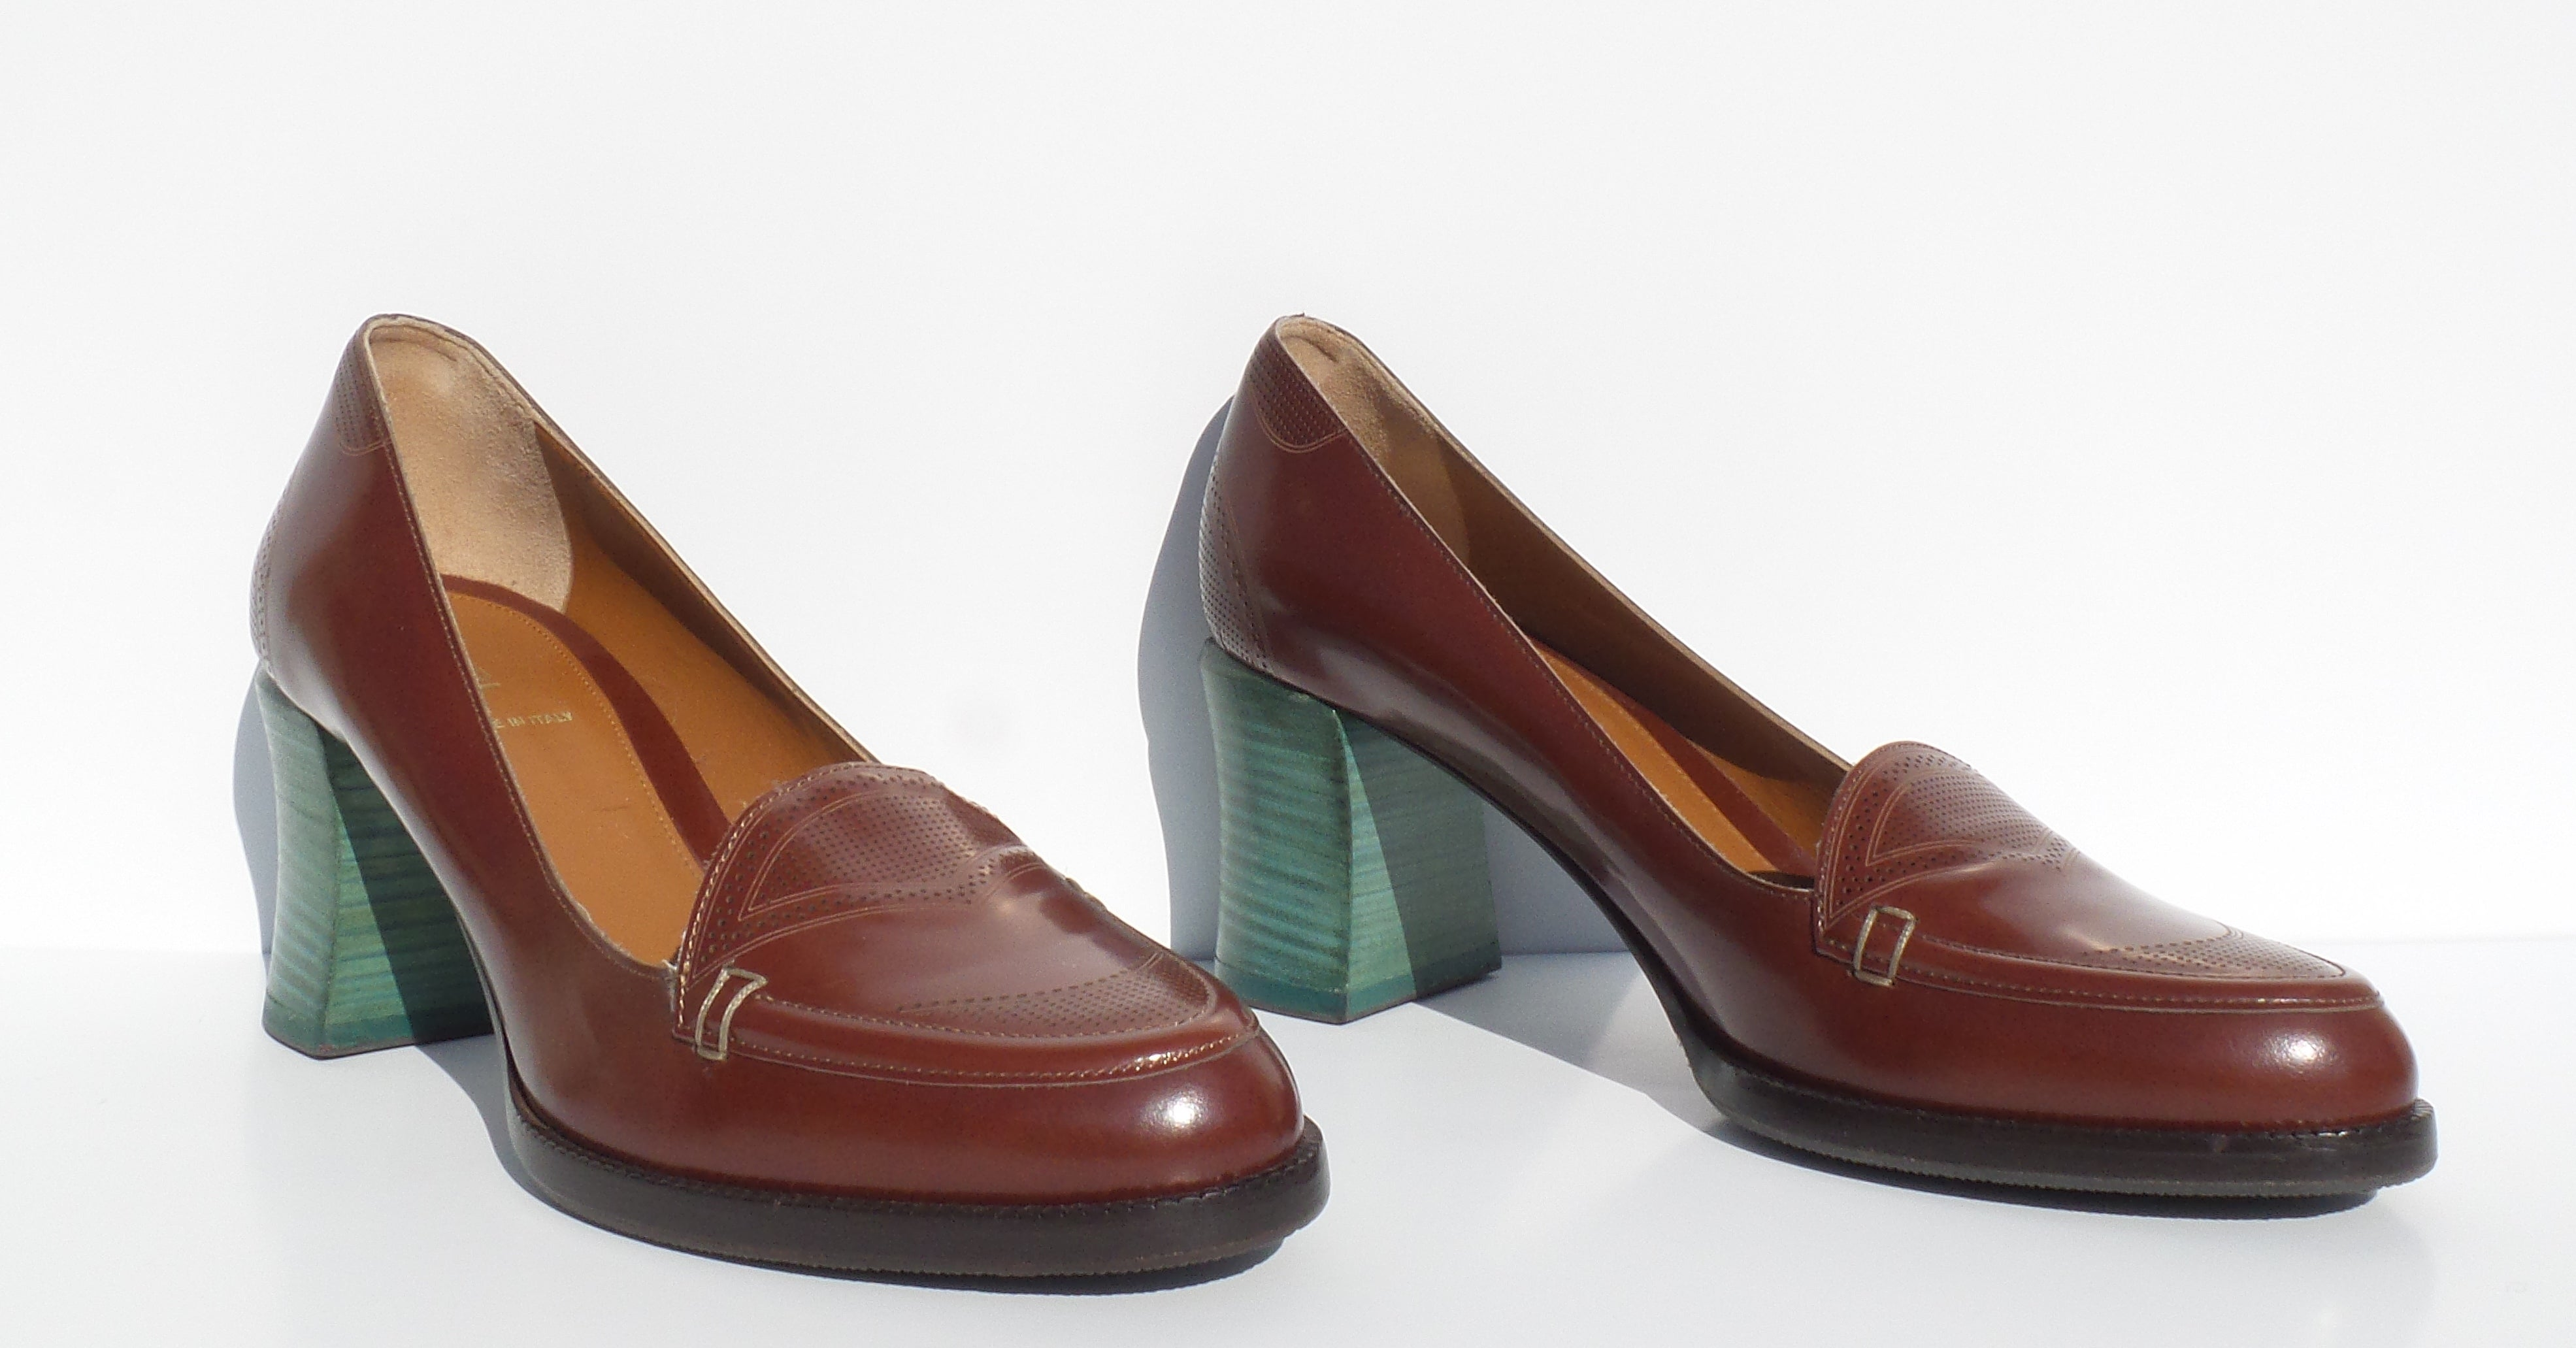 FENDI Austen Colorblock Brown Polished Leather Teal Green Heel Loafer Pumps 39